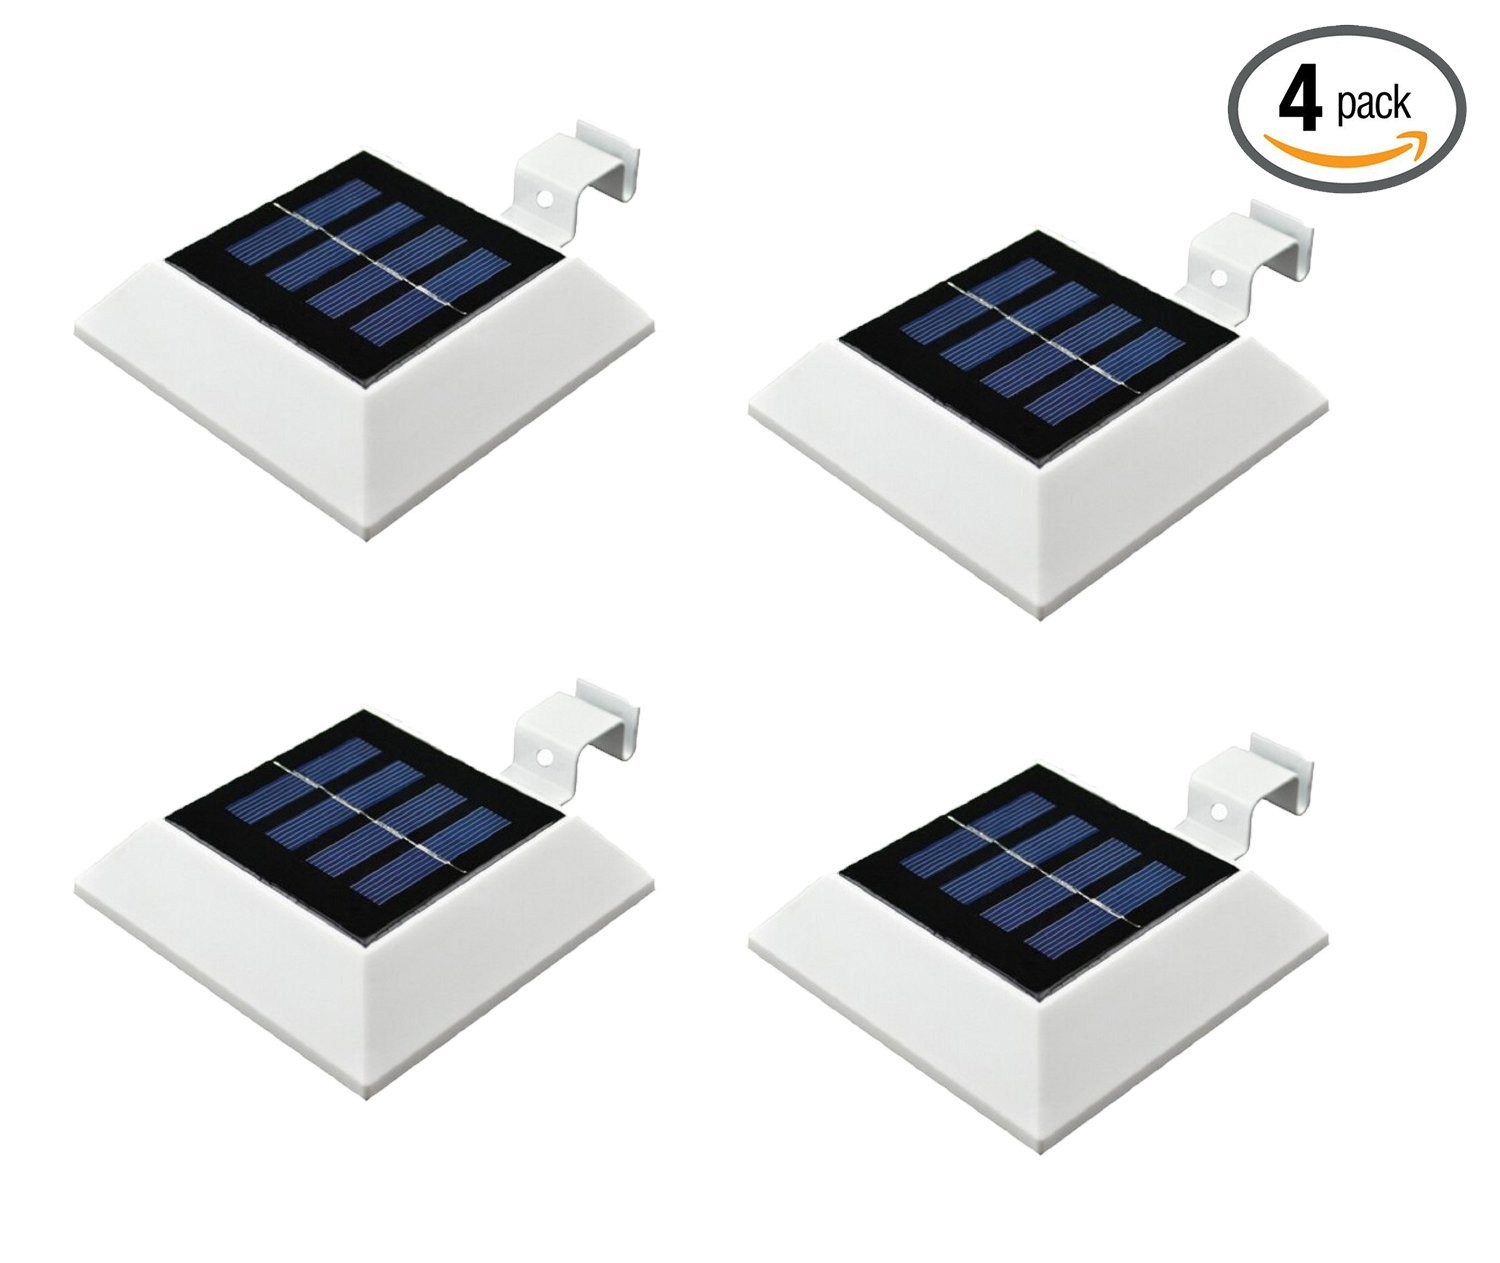 [4 Pack]HKYH Solar Powered Waterproof Security Lamp, 4 LED Solar Gutter Lights for Outdoor Garden, Fence, Dog House, Tree, Outside Garage Door, Wall, Stairs Anywhere Safety Lite with Bracket